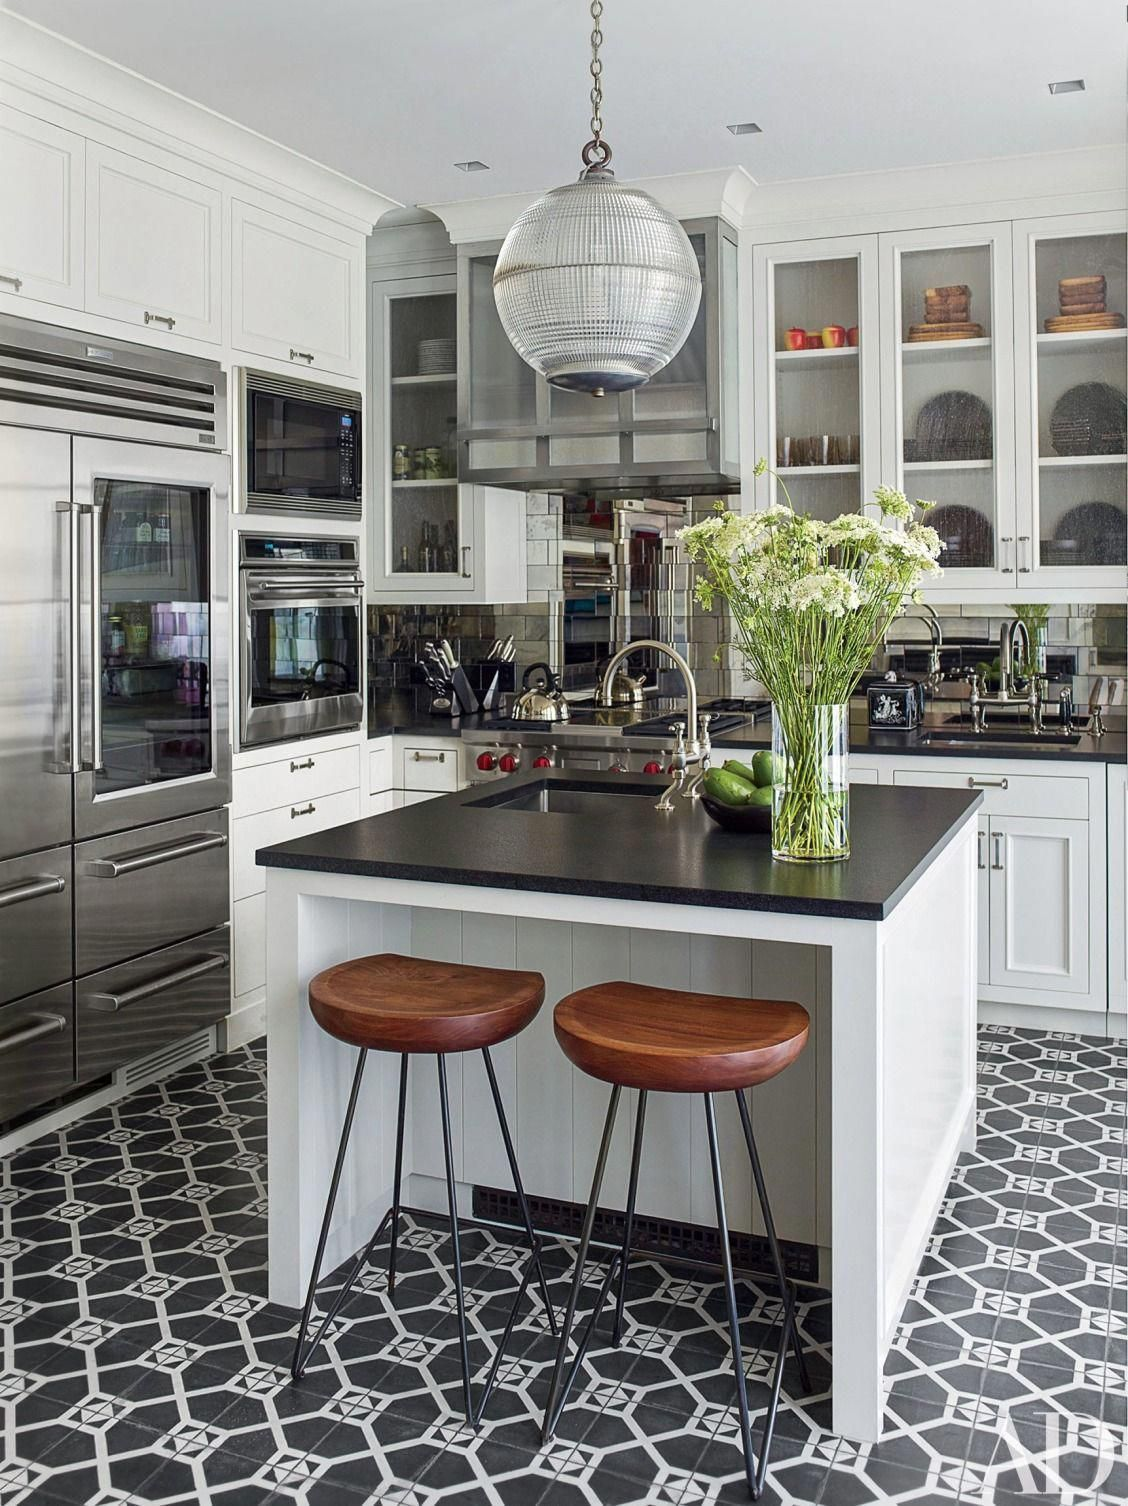 Low window behind kitchen sink  traditional kitchen with black and white printed tiles a retro